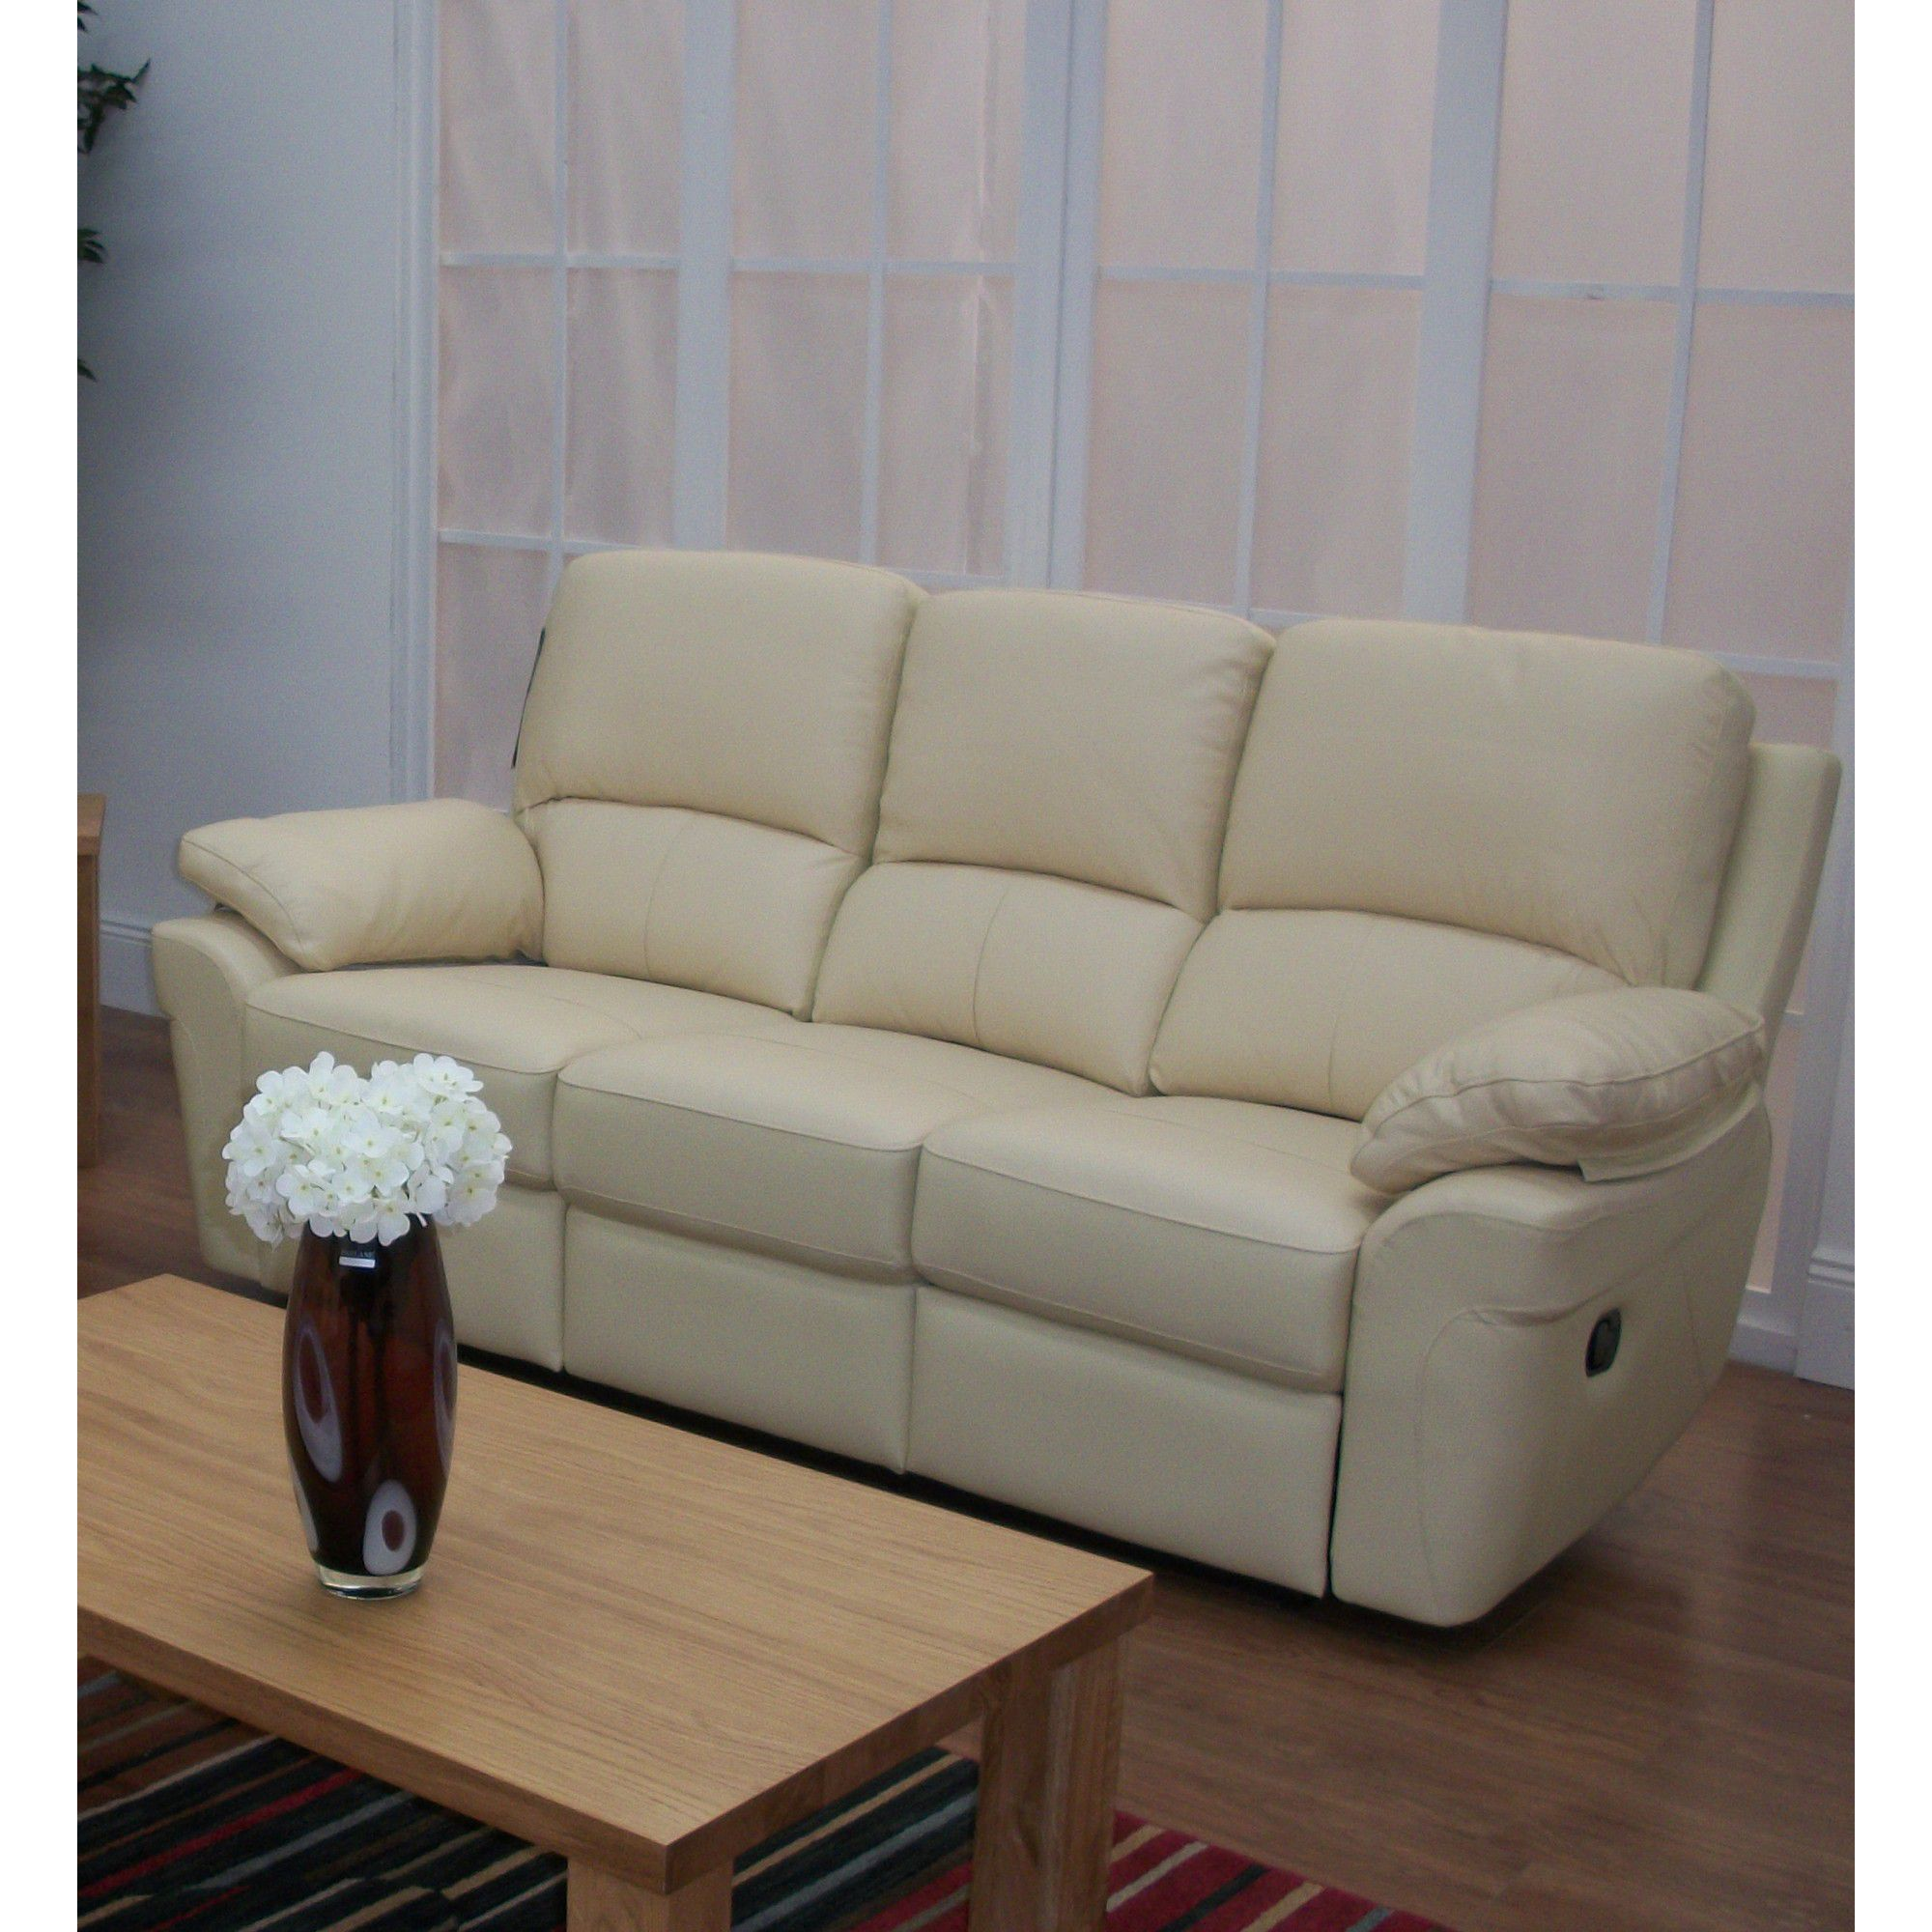 Furniture Link Monzano Three Fixed Seat Sofa in Ivory - Chestnut at Tesco Direct